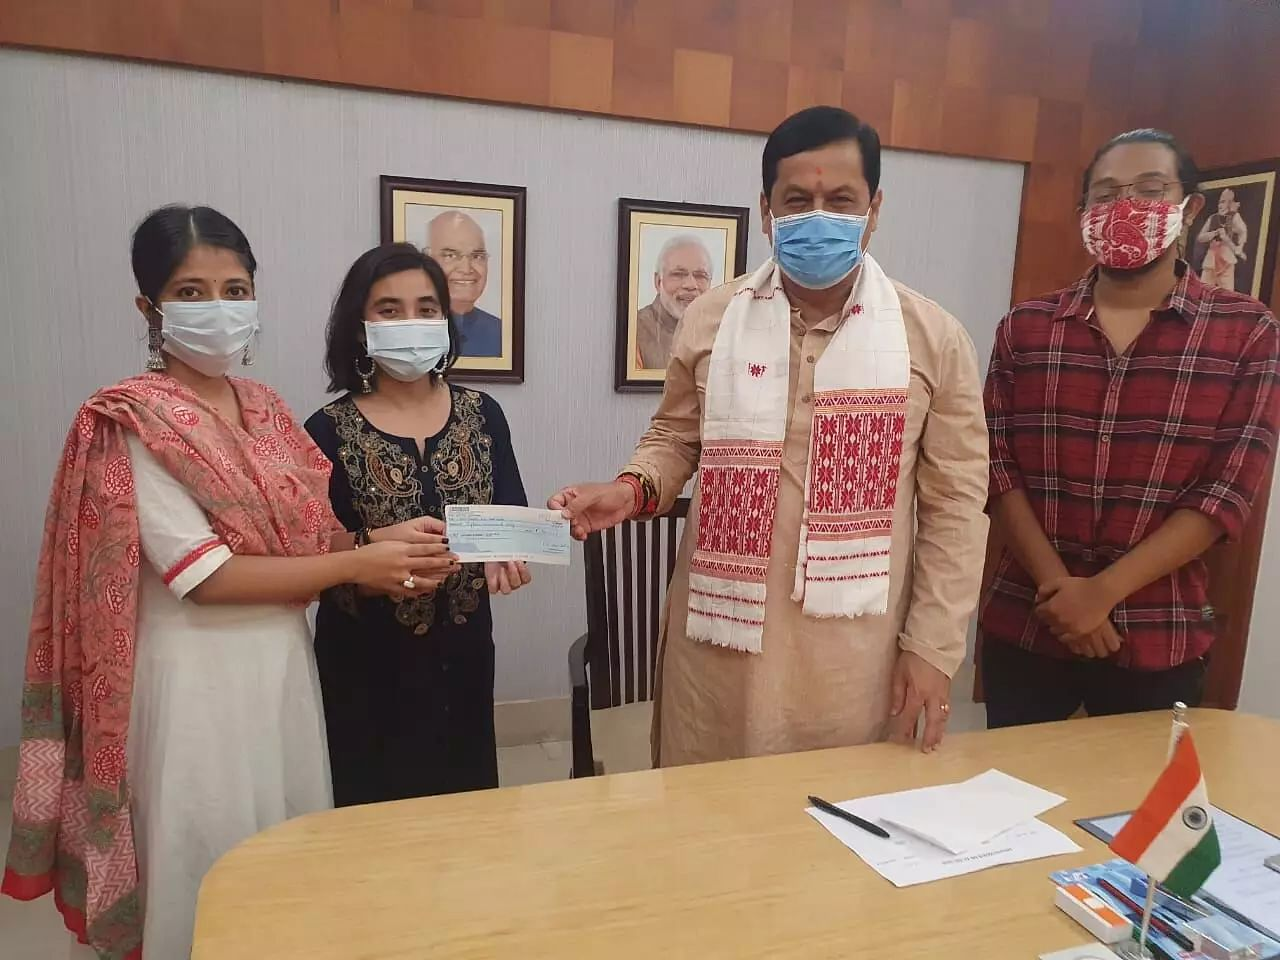 Assam students body donates money for flood relief to CM Sonowal, lauded